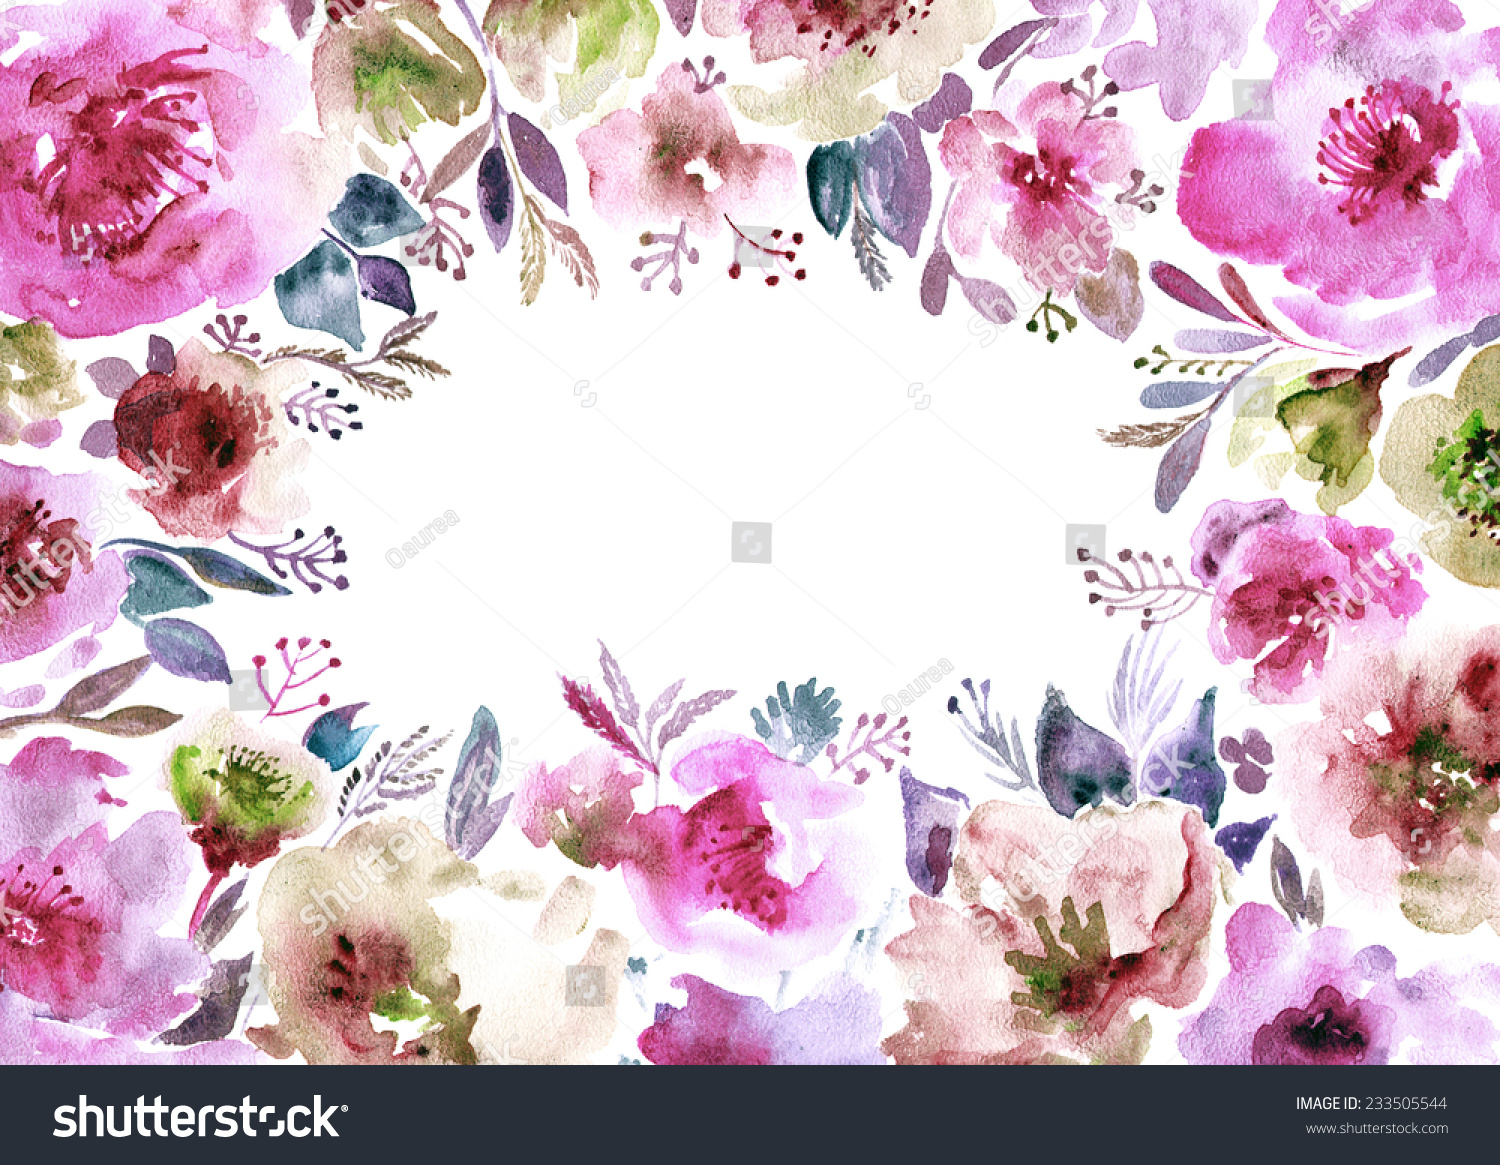 Floral Background Watercolor Floral Bouquet Birthday Stock ...